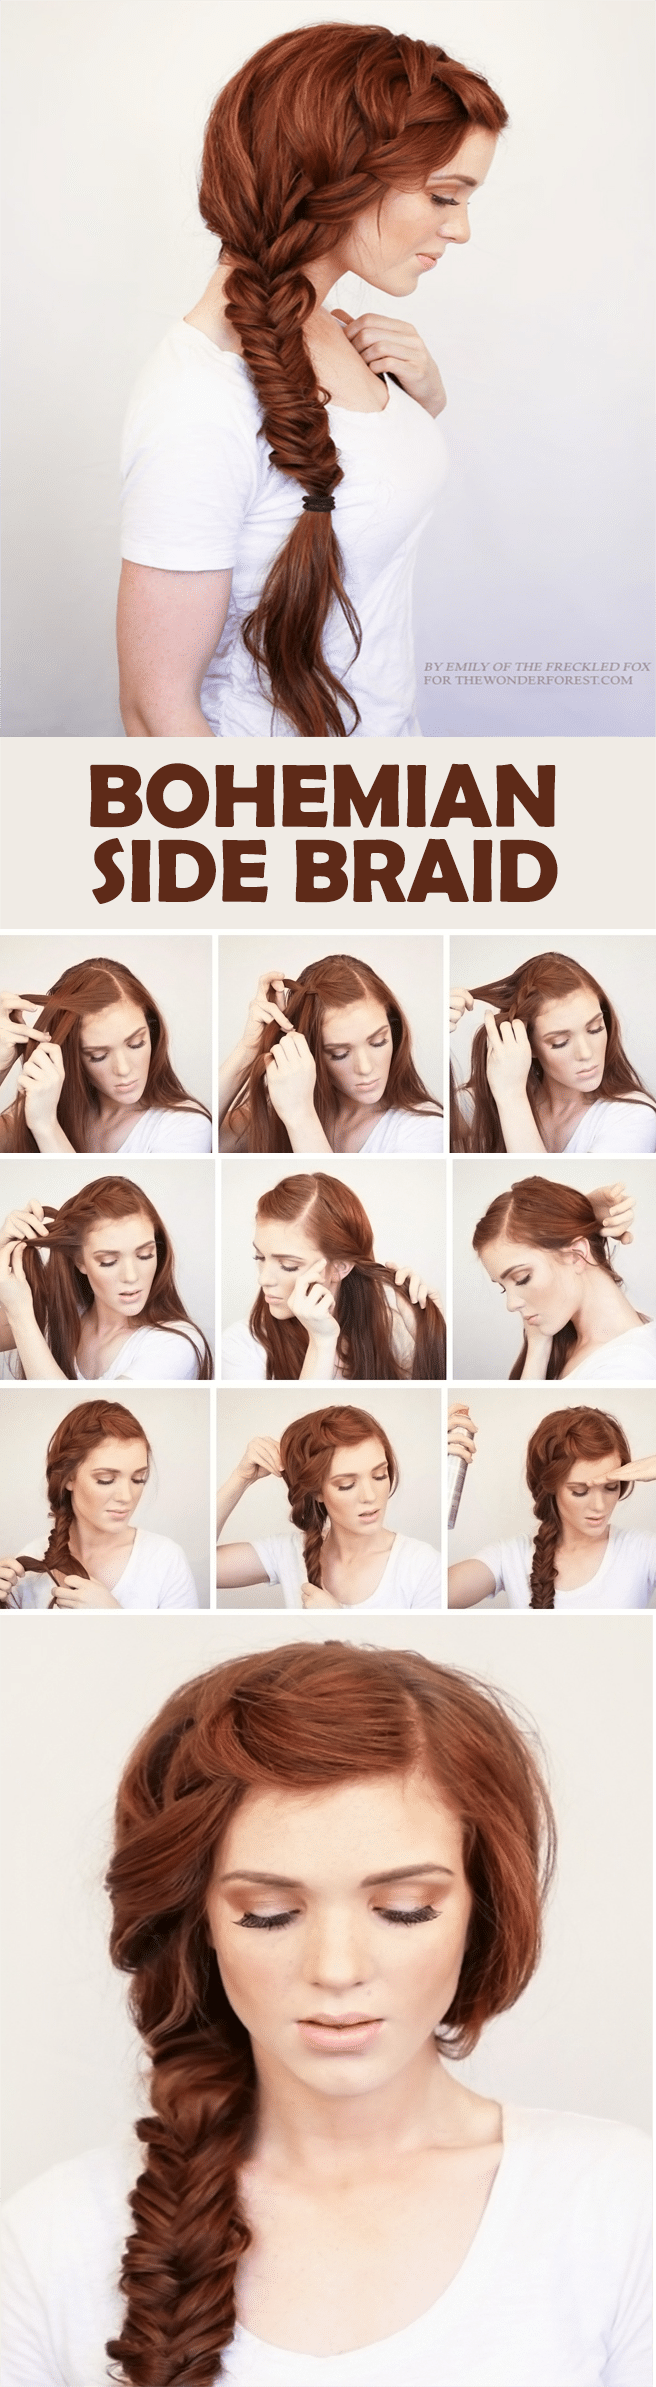 BOHEMIAN SIDE BRAID HAIRSTYLE